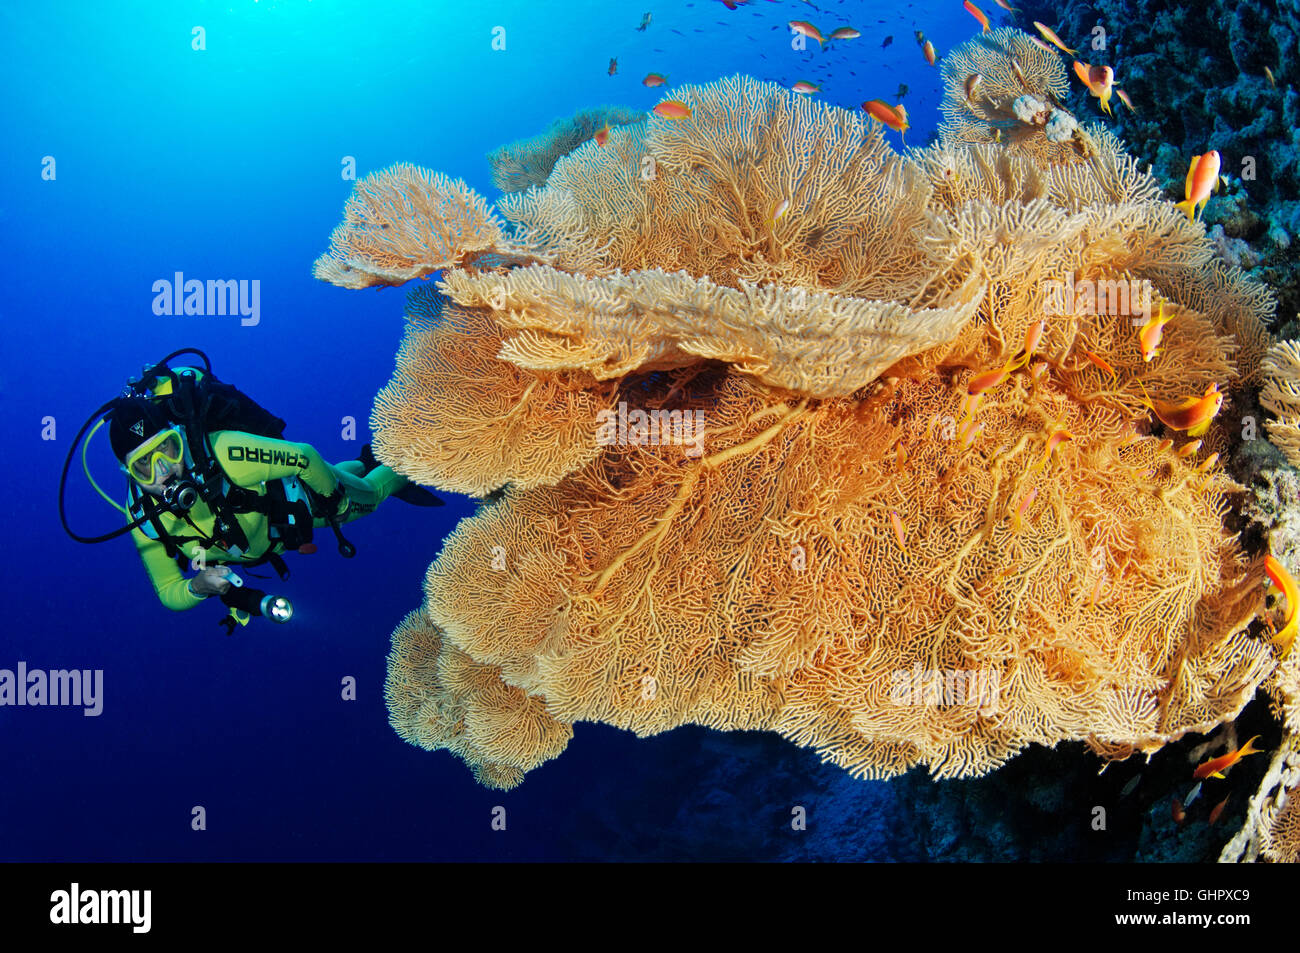 Coral reef with Giant Gorgonian or Sea fan and scuba diver, Hurghada, Giftun Island Reef, Red Sea, Egypt Stock Photo